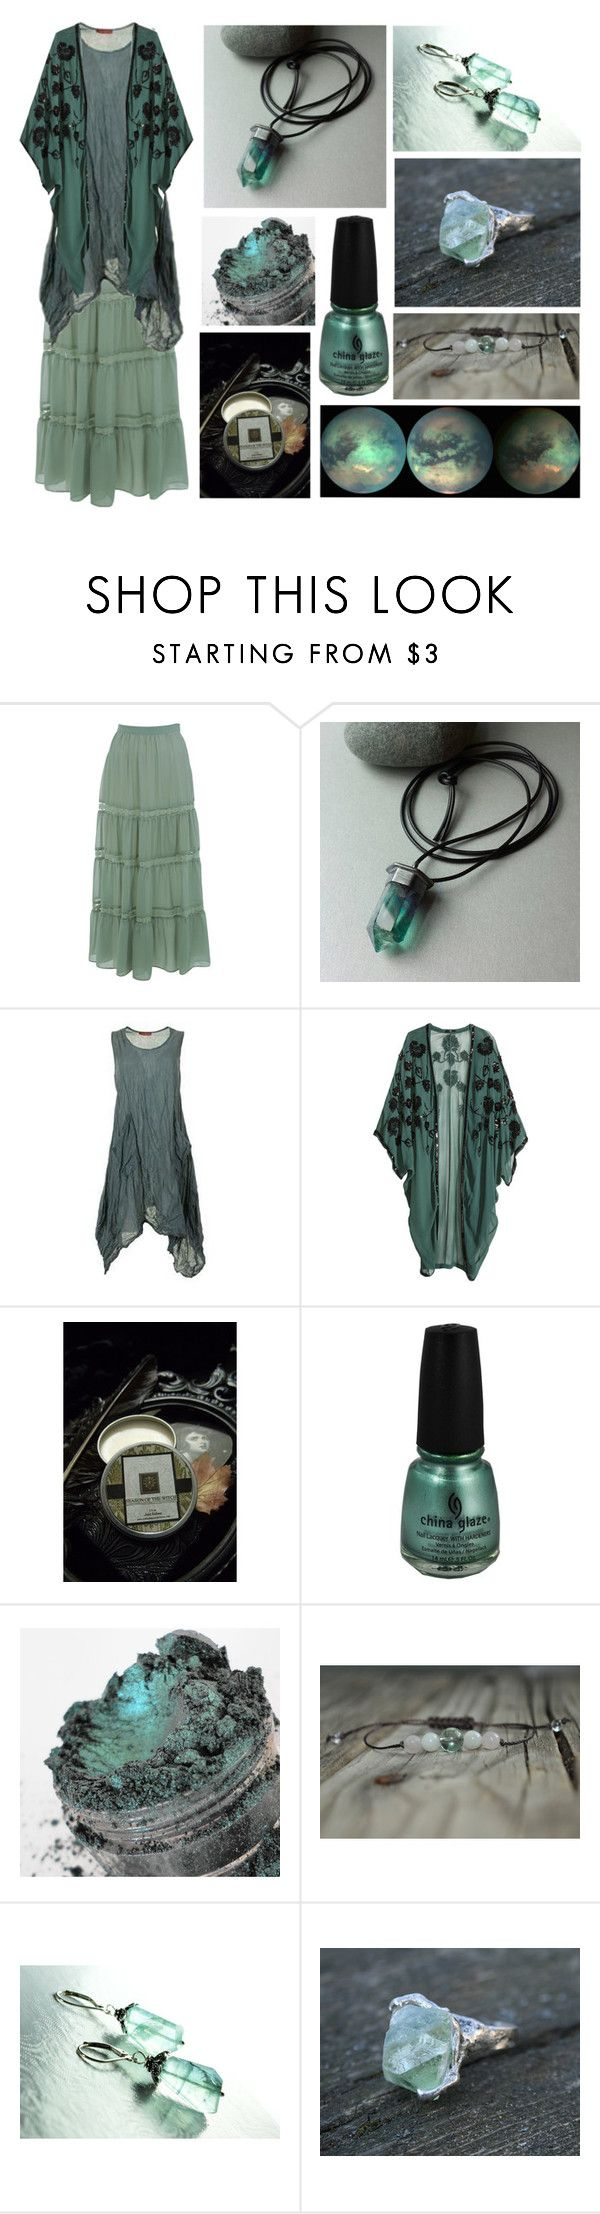 Ocean Storm by maggiehemlock on Polyvore featuring H&M, Miss Selfridge and China Glaze